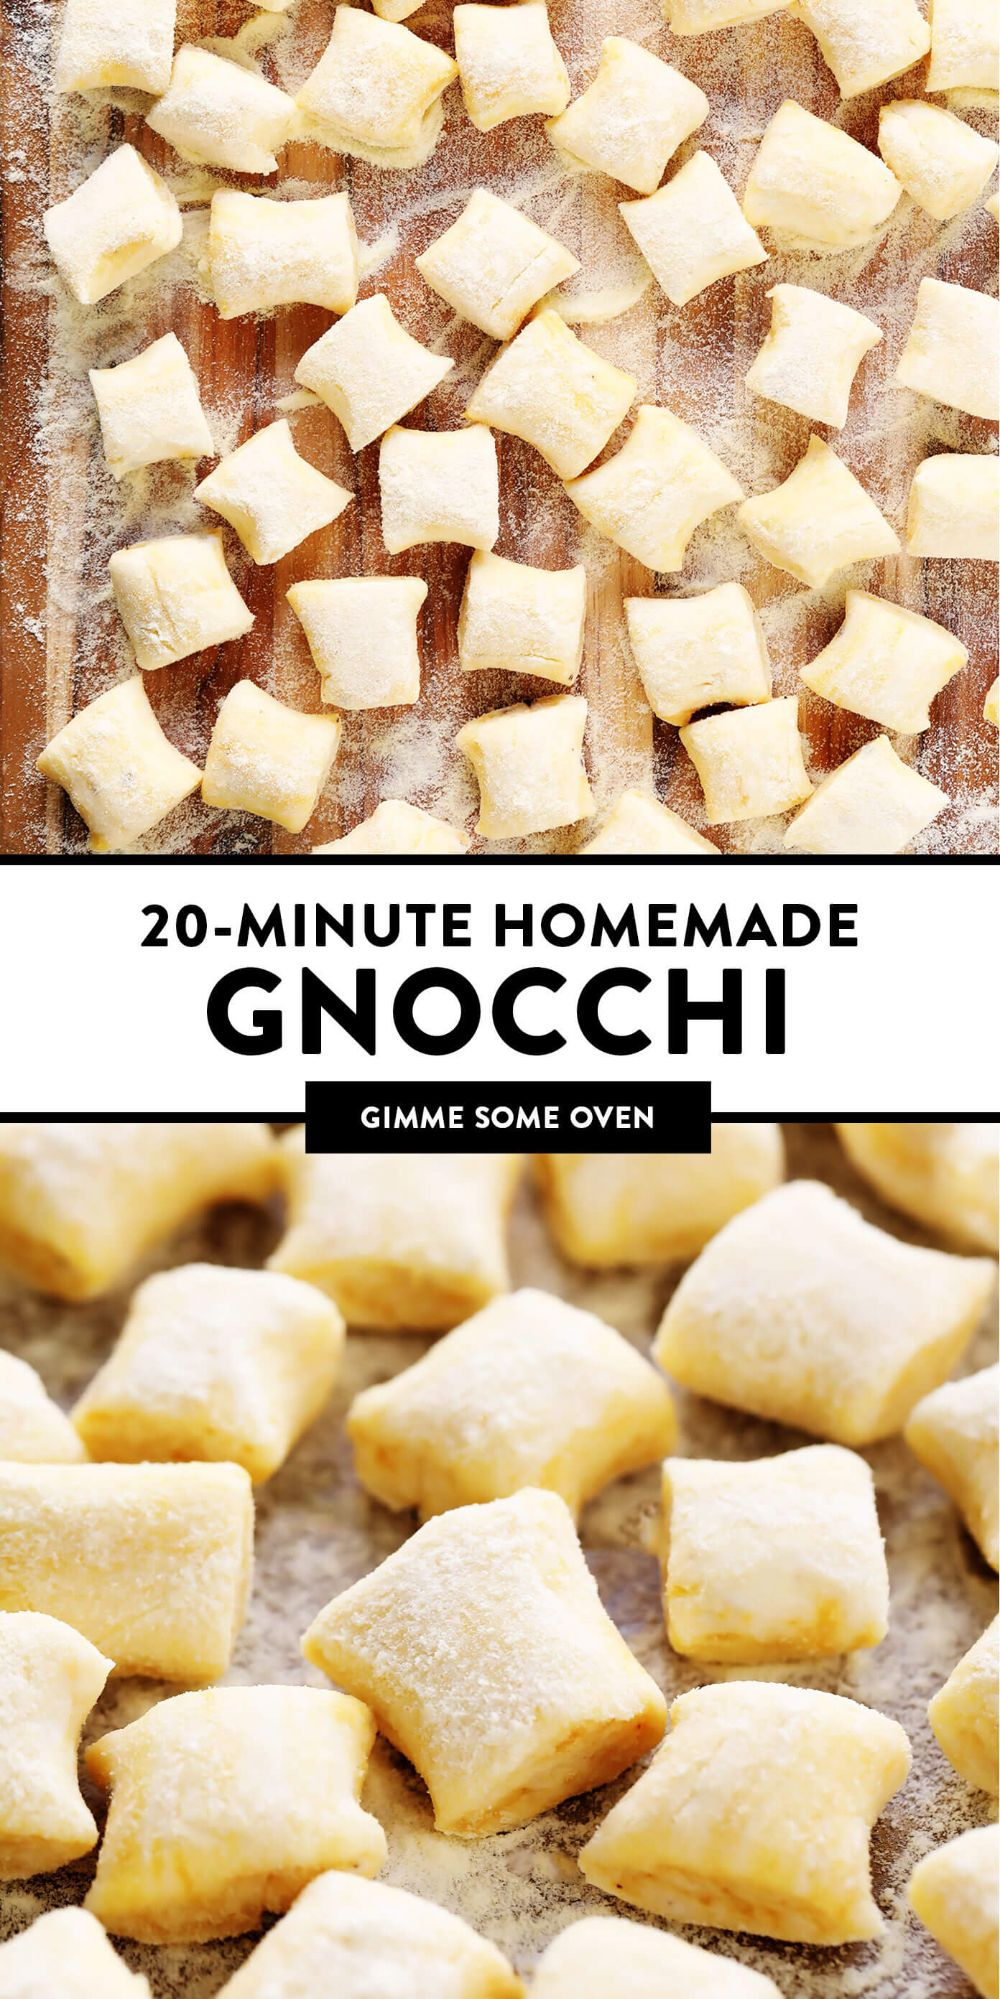 LOVE this 20-minute ricotta gnocchi recipe! It's super quick and easy to make with just 4 ingredients, and perfectly light and pillowy and delicious. Pair them with any favorite Italian sauce, add them to a soup, toast them in some butter, or whatever else might sound good. | gimmesomeoven.com #gnocchi #italian #dinner #pasta #easy #mealprep #freezermeals